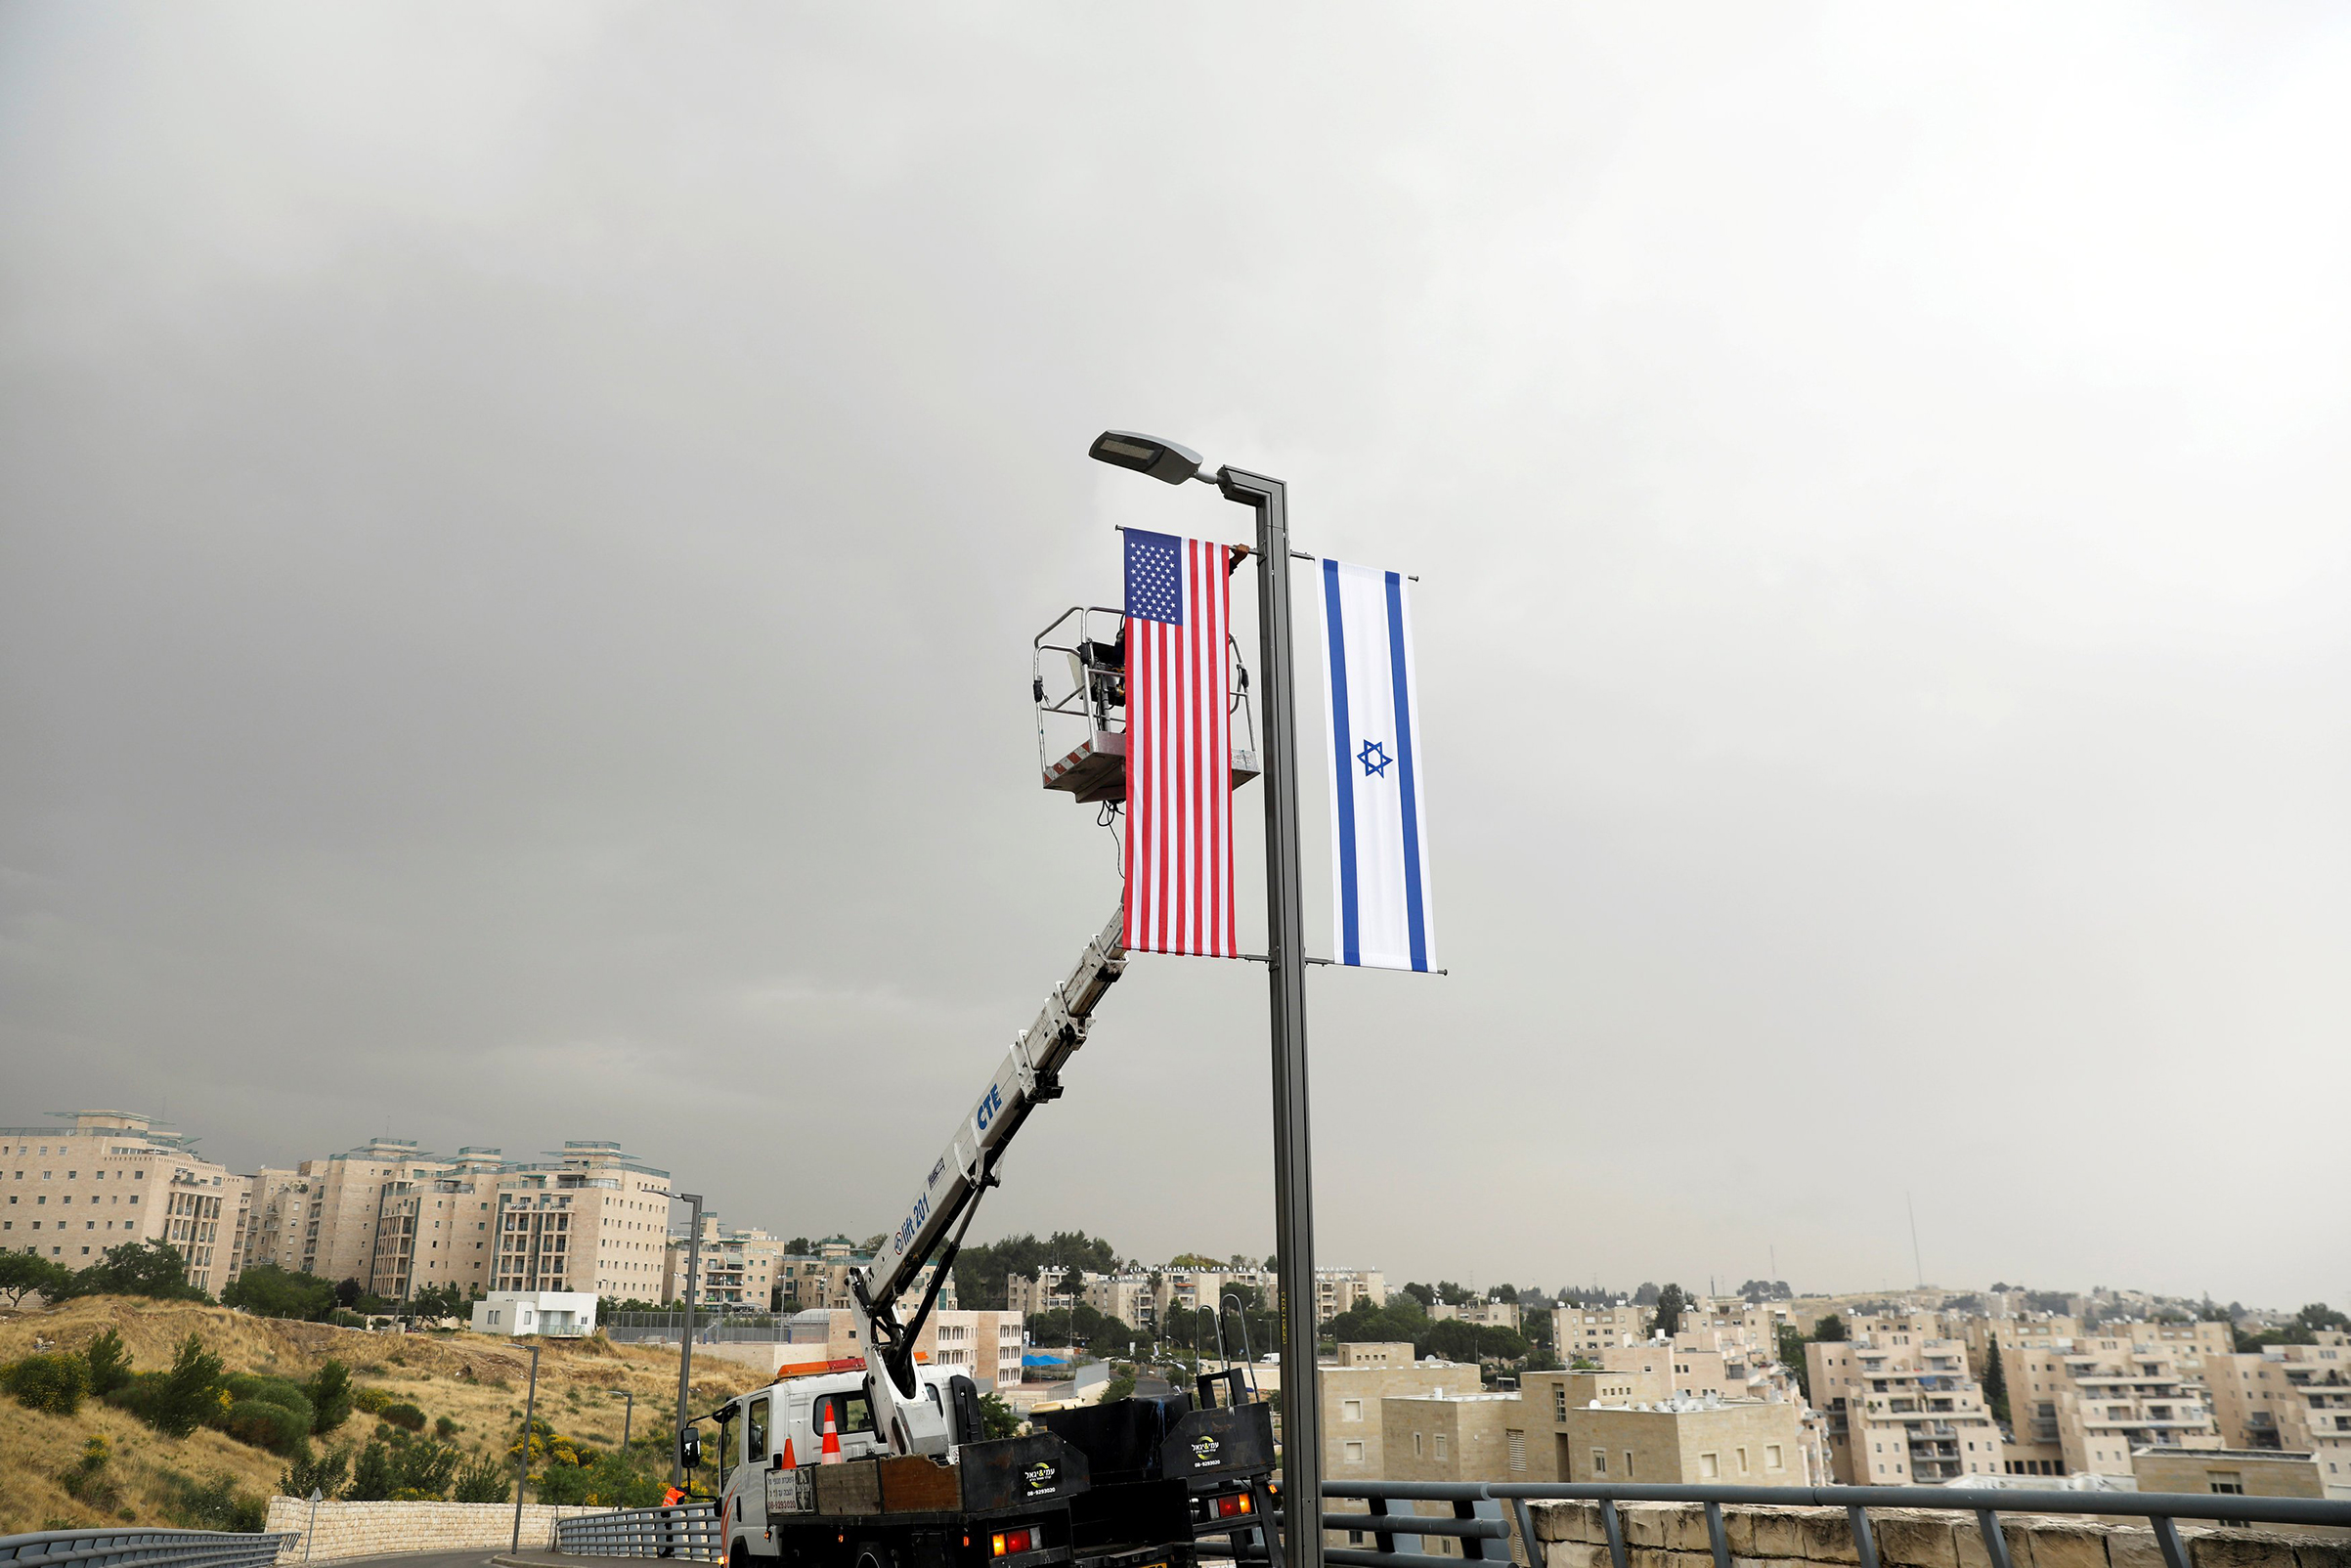 A worker on a crane hangs a U.S. flag alongside an Israeli flag, next to the entrance to the U.S. consulate in Jerusalem, on May 7, 2018.